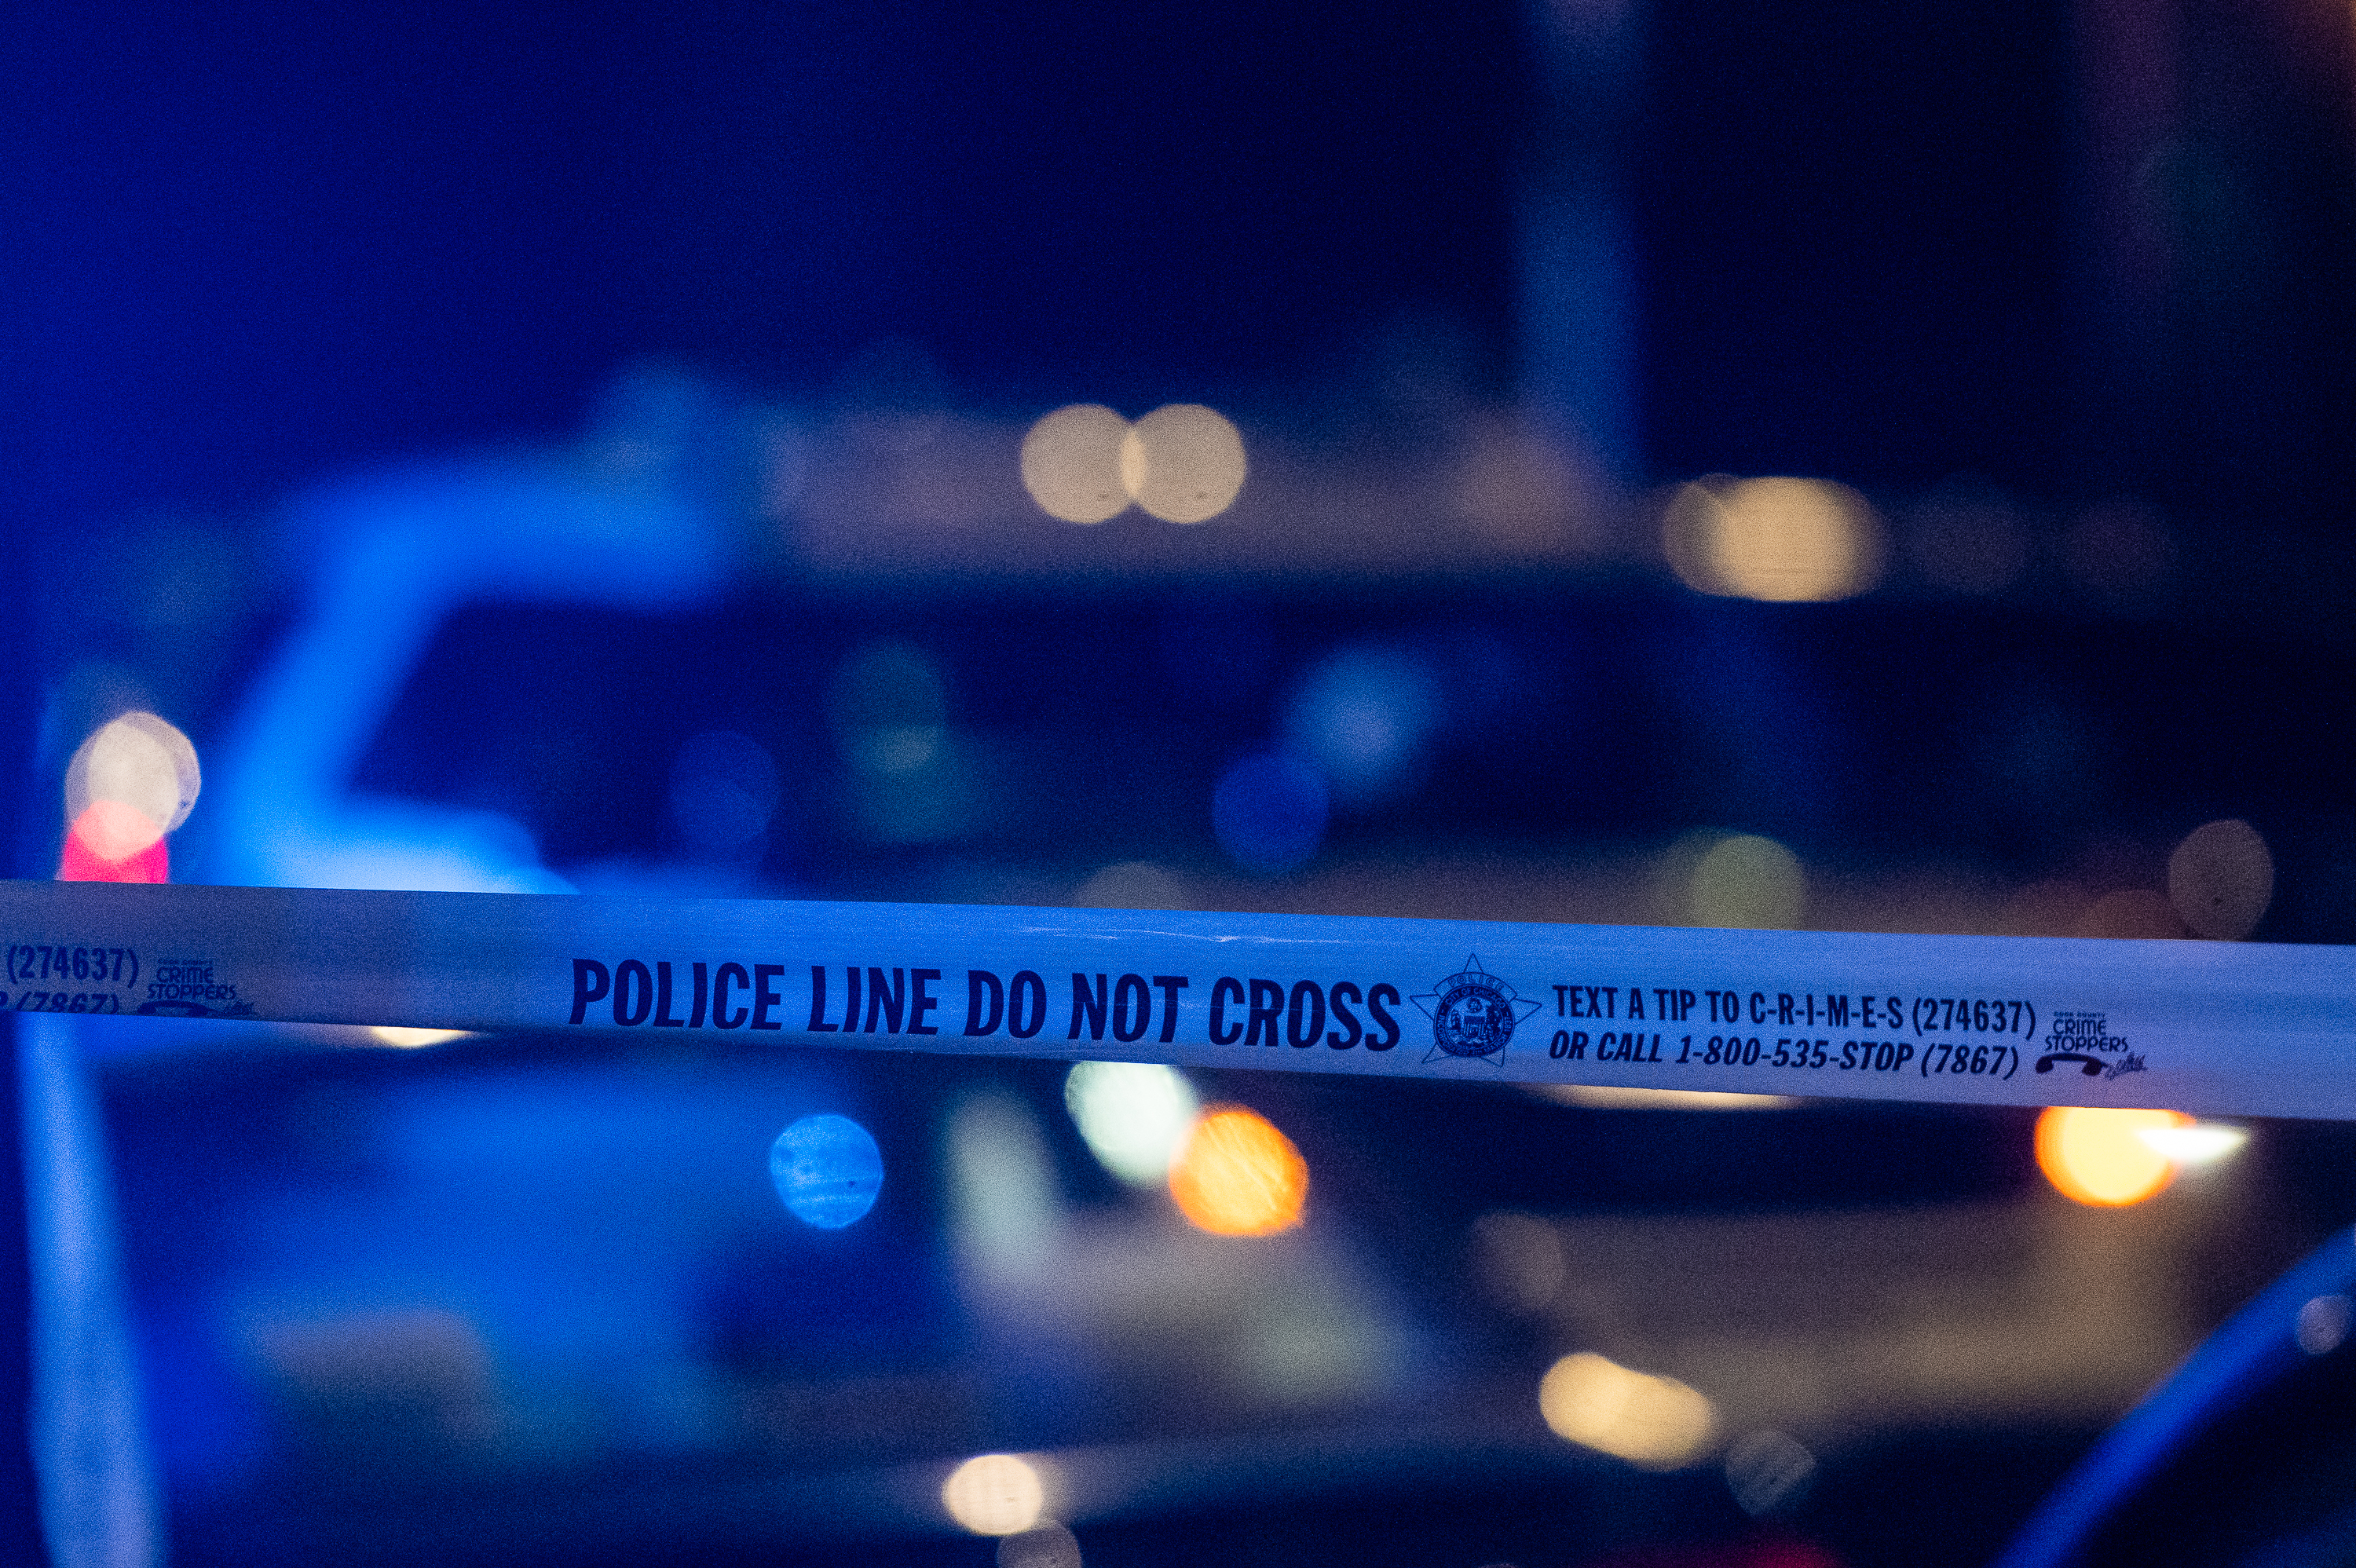 A 45-year-old man was found fatally shot July 12, 2020, in Englewood.